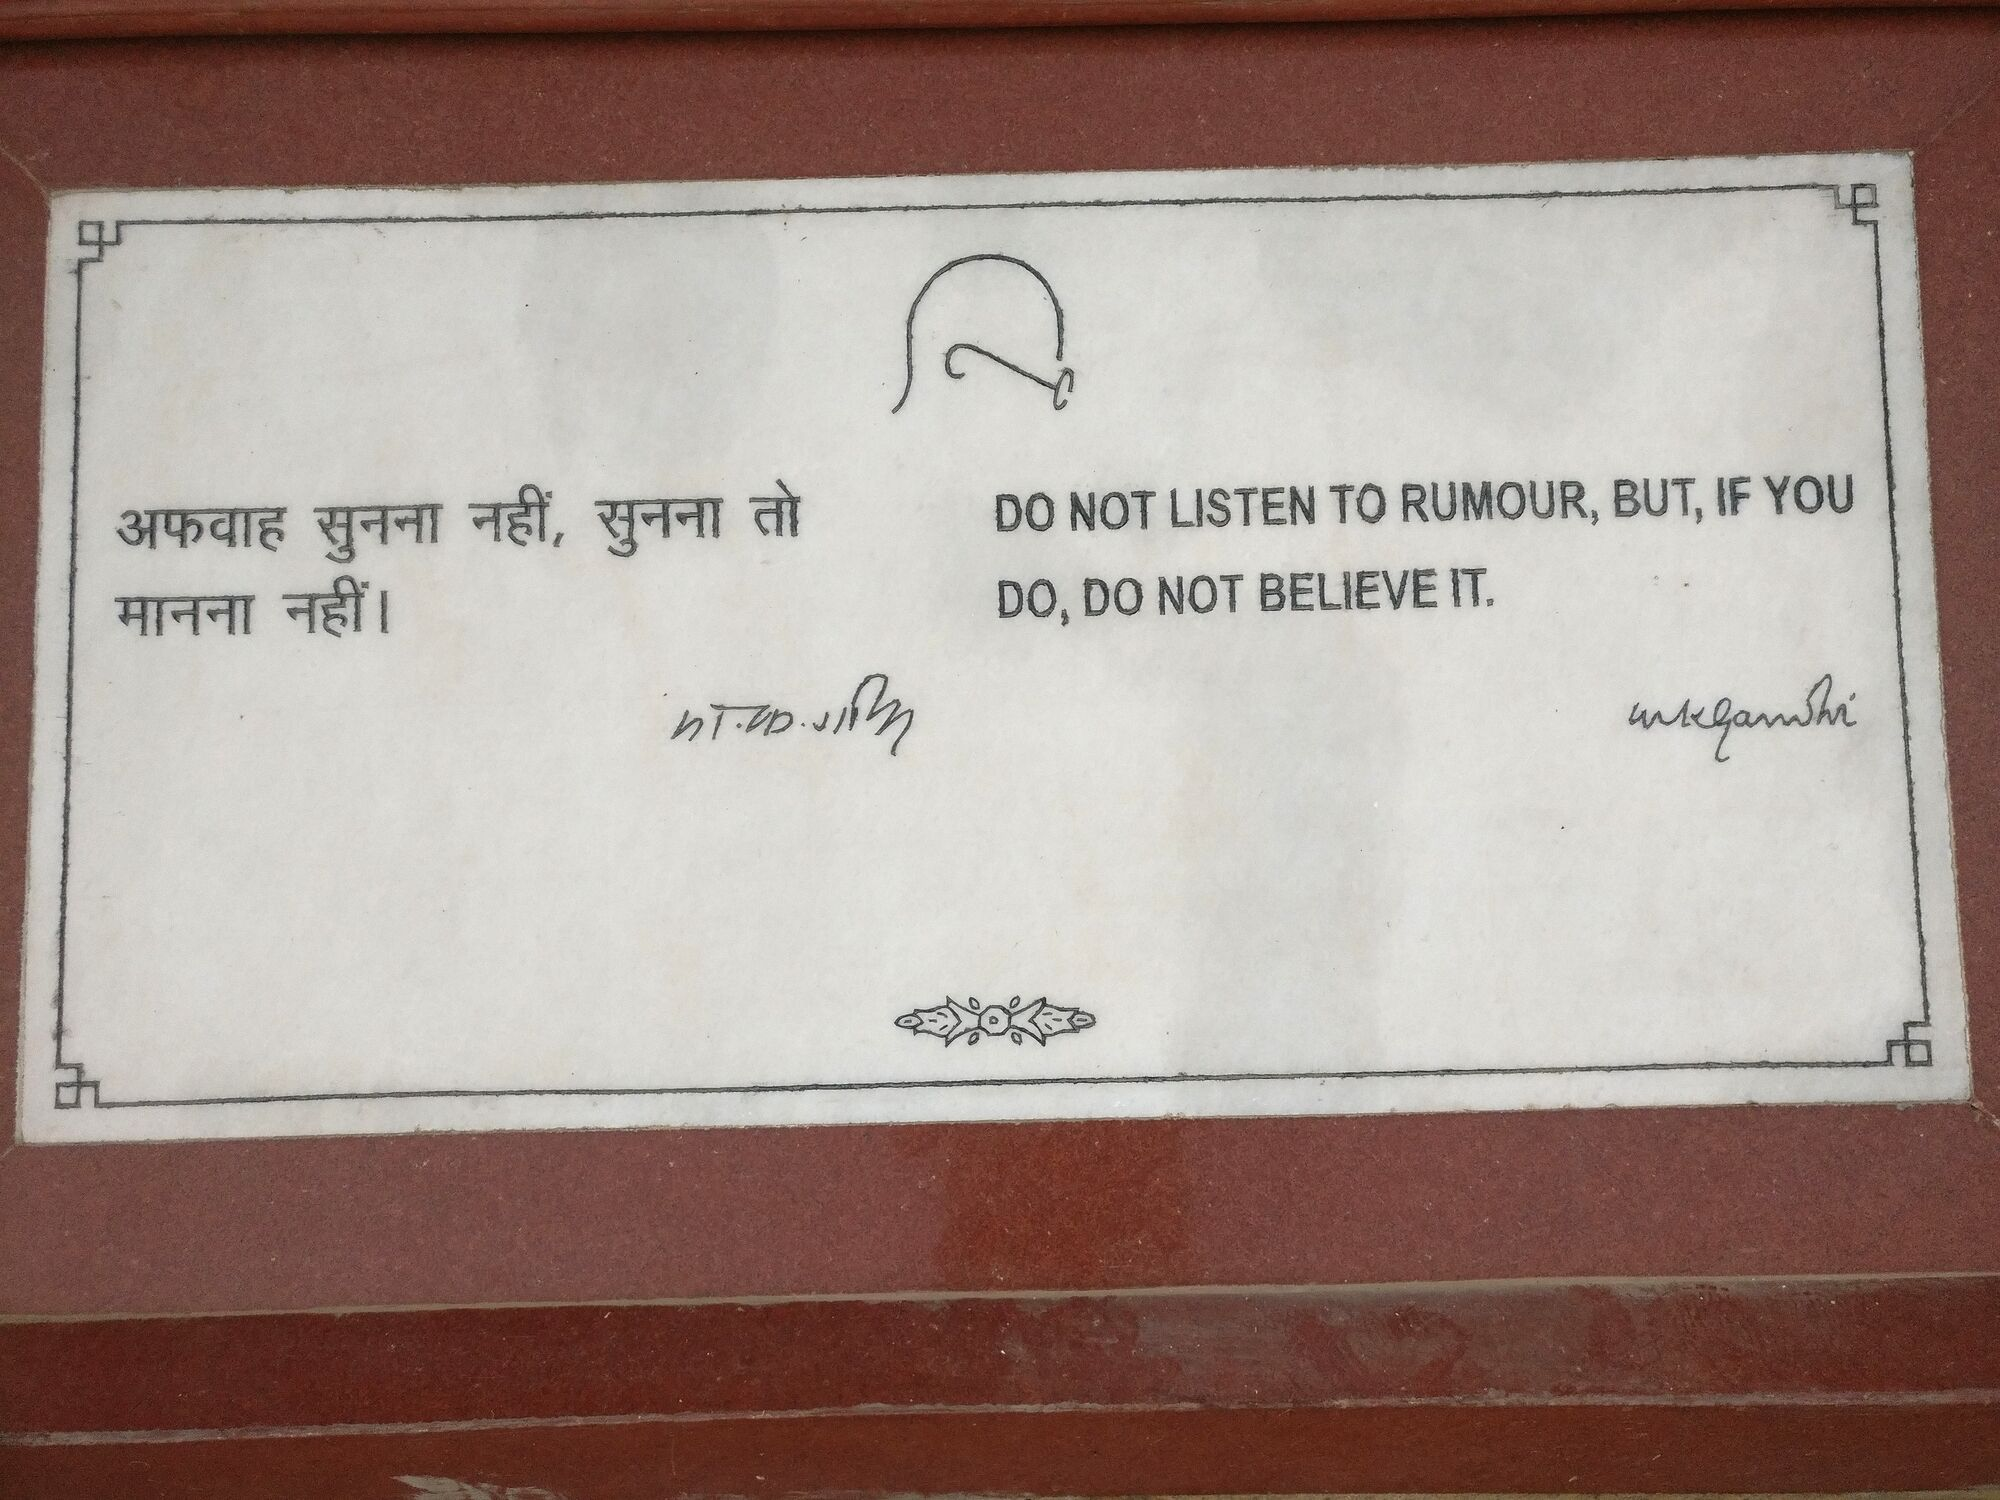 Do not listen to rumour, but, if you do, do not believe it - M.K.Gandhi